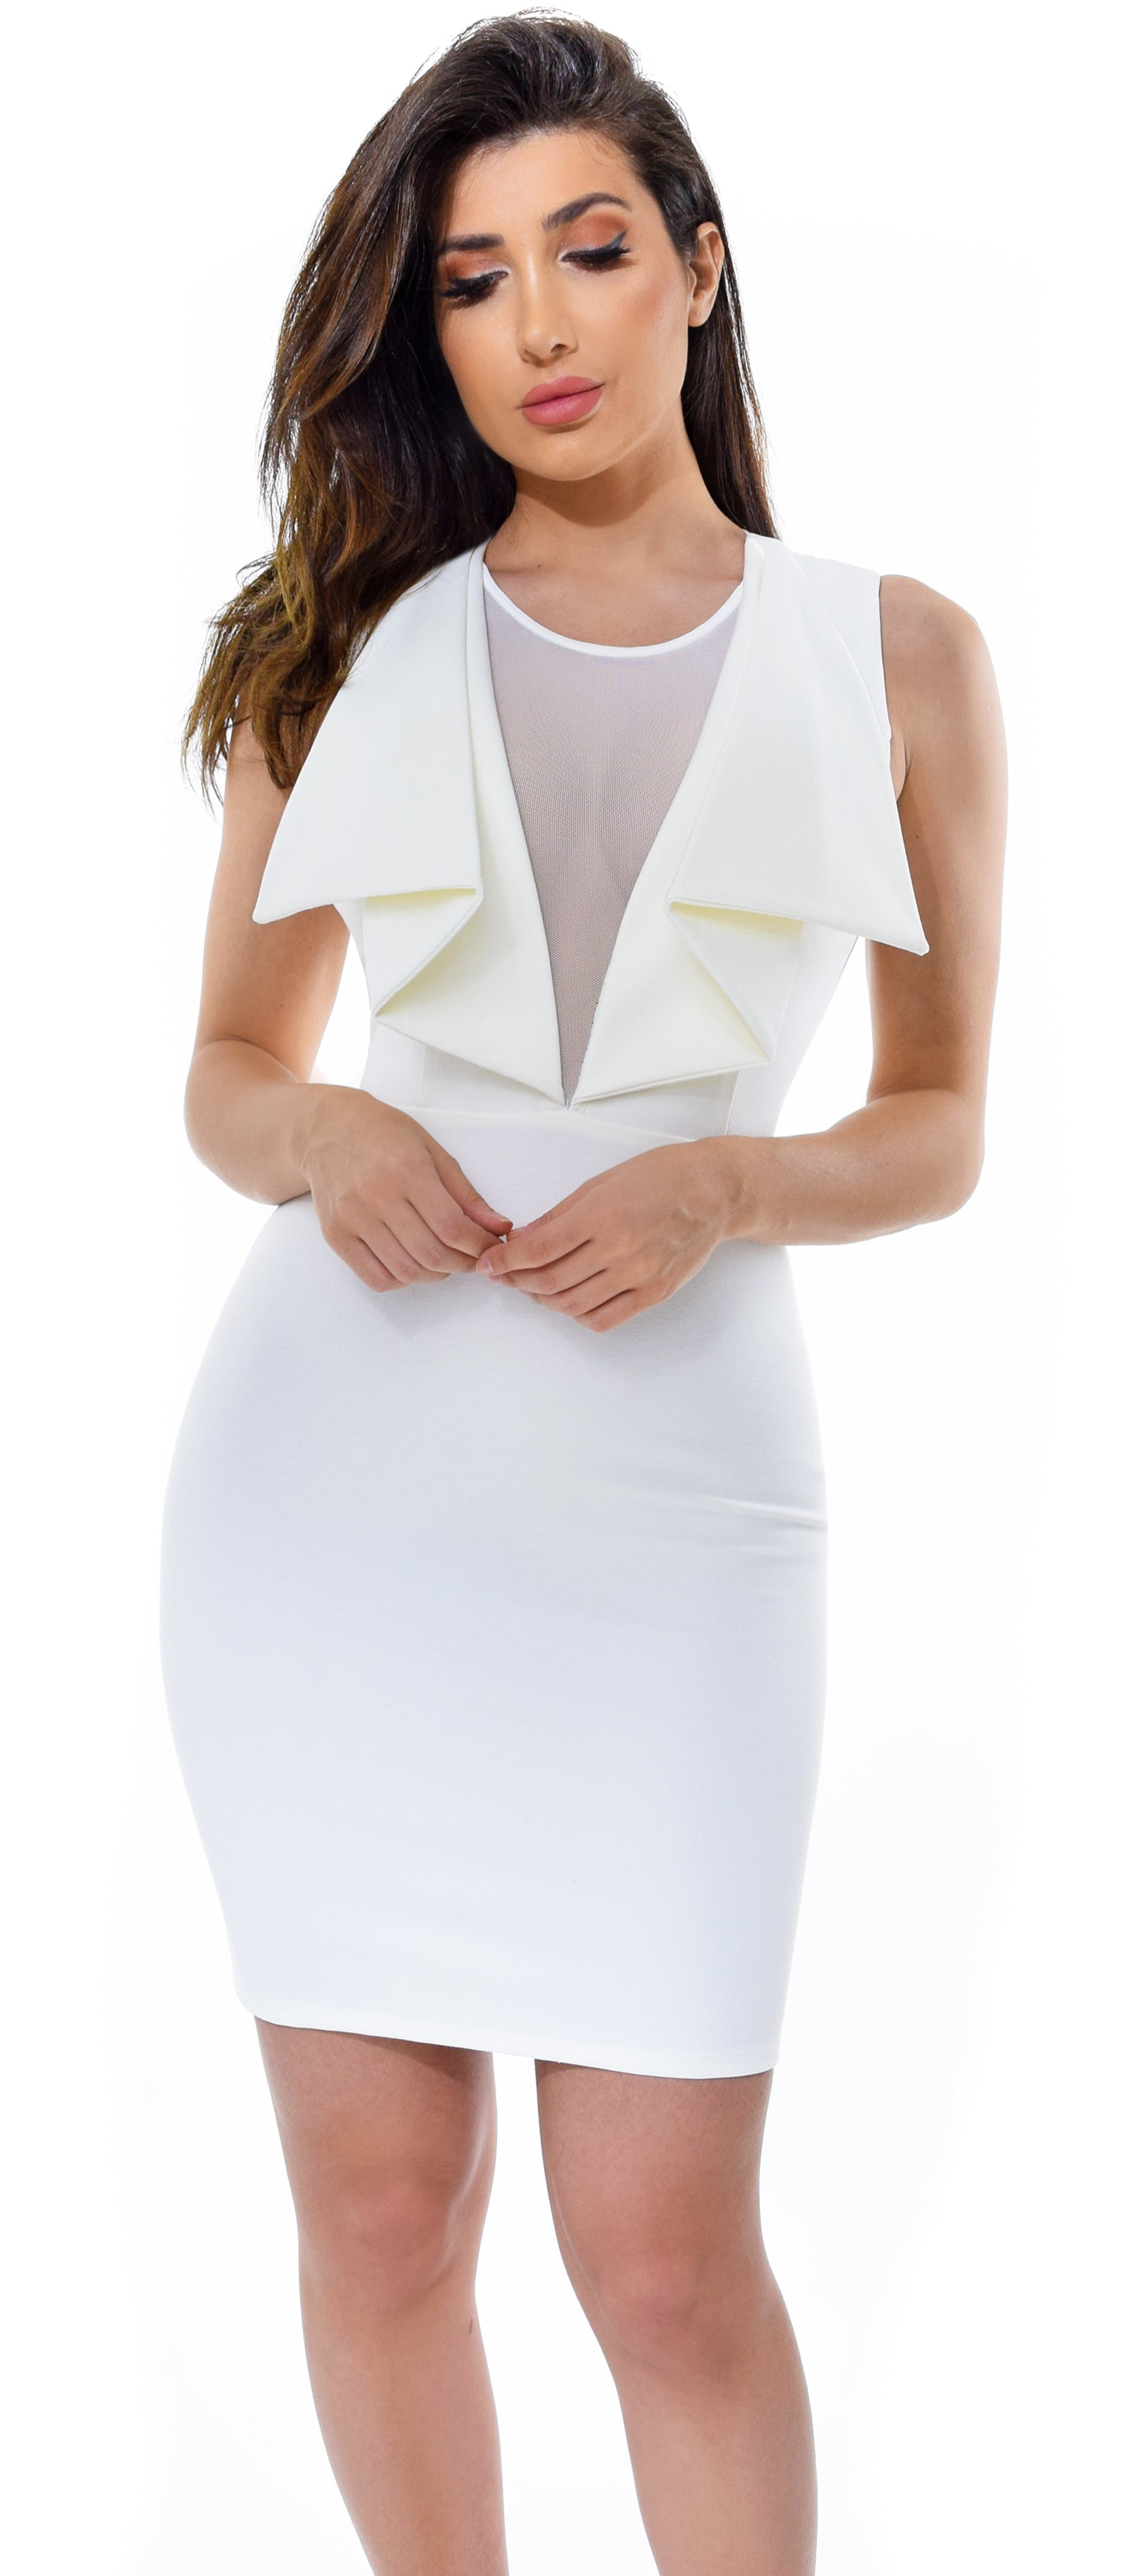 Martina White Mesh Drape Ruffle Dress